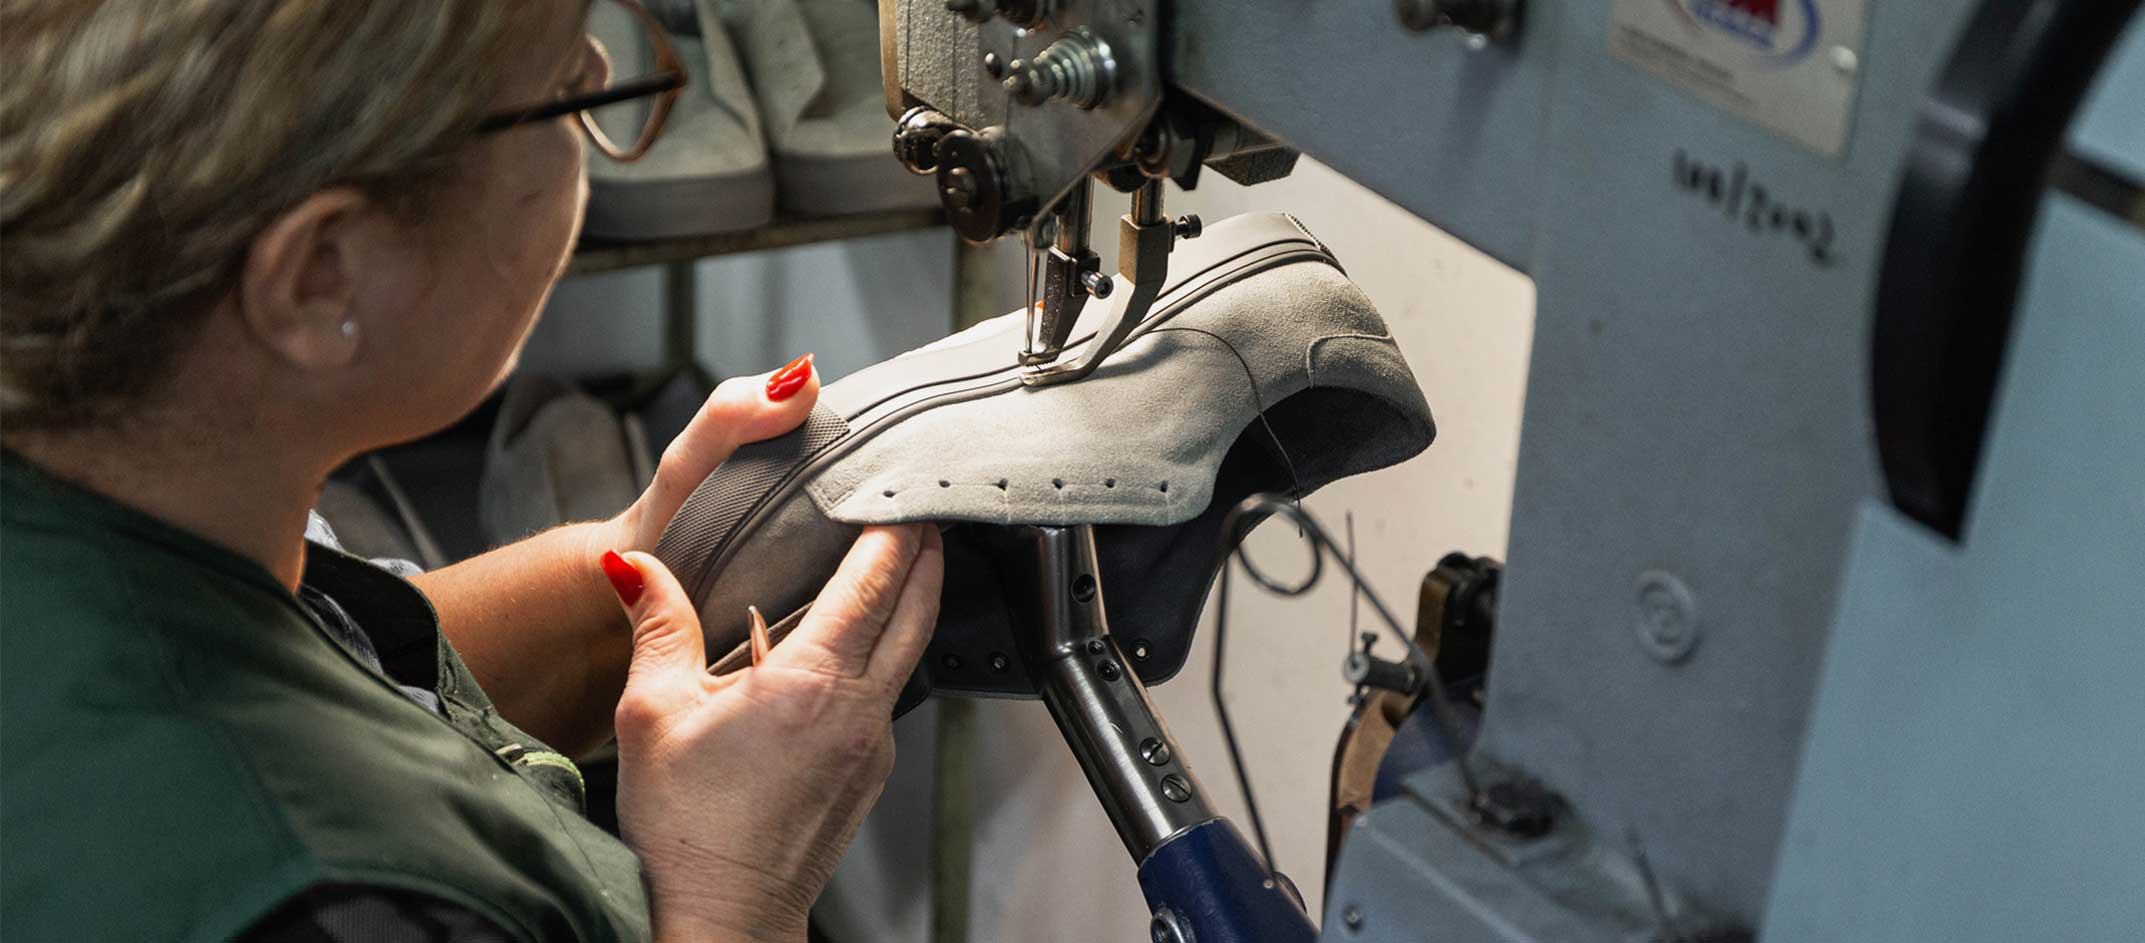 Our Sneaker Manufactory